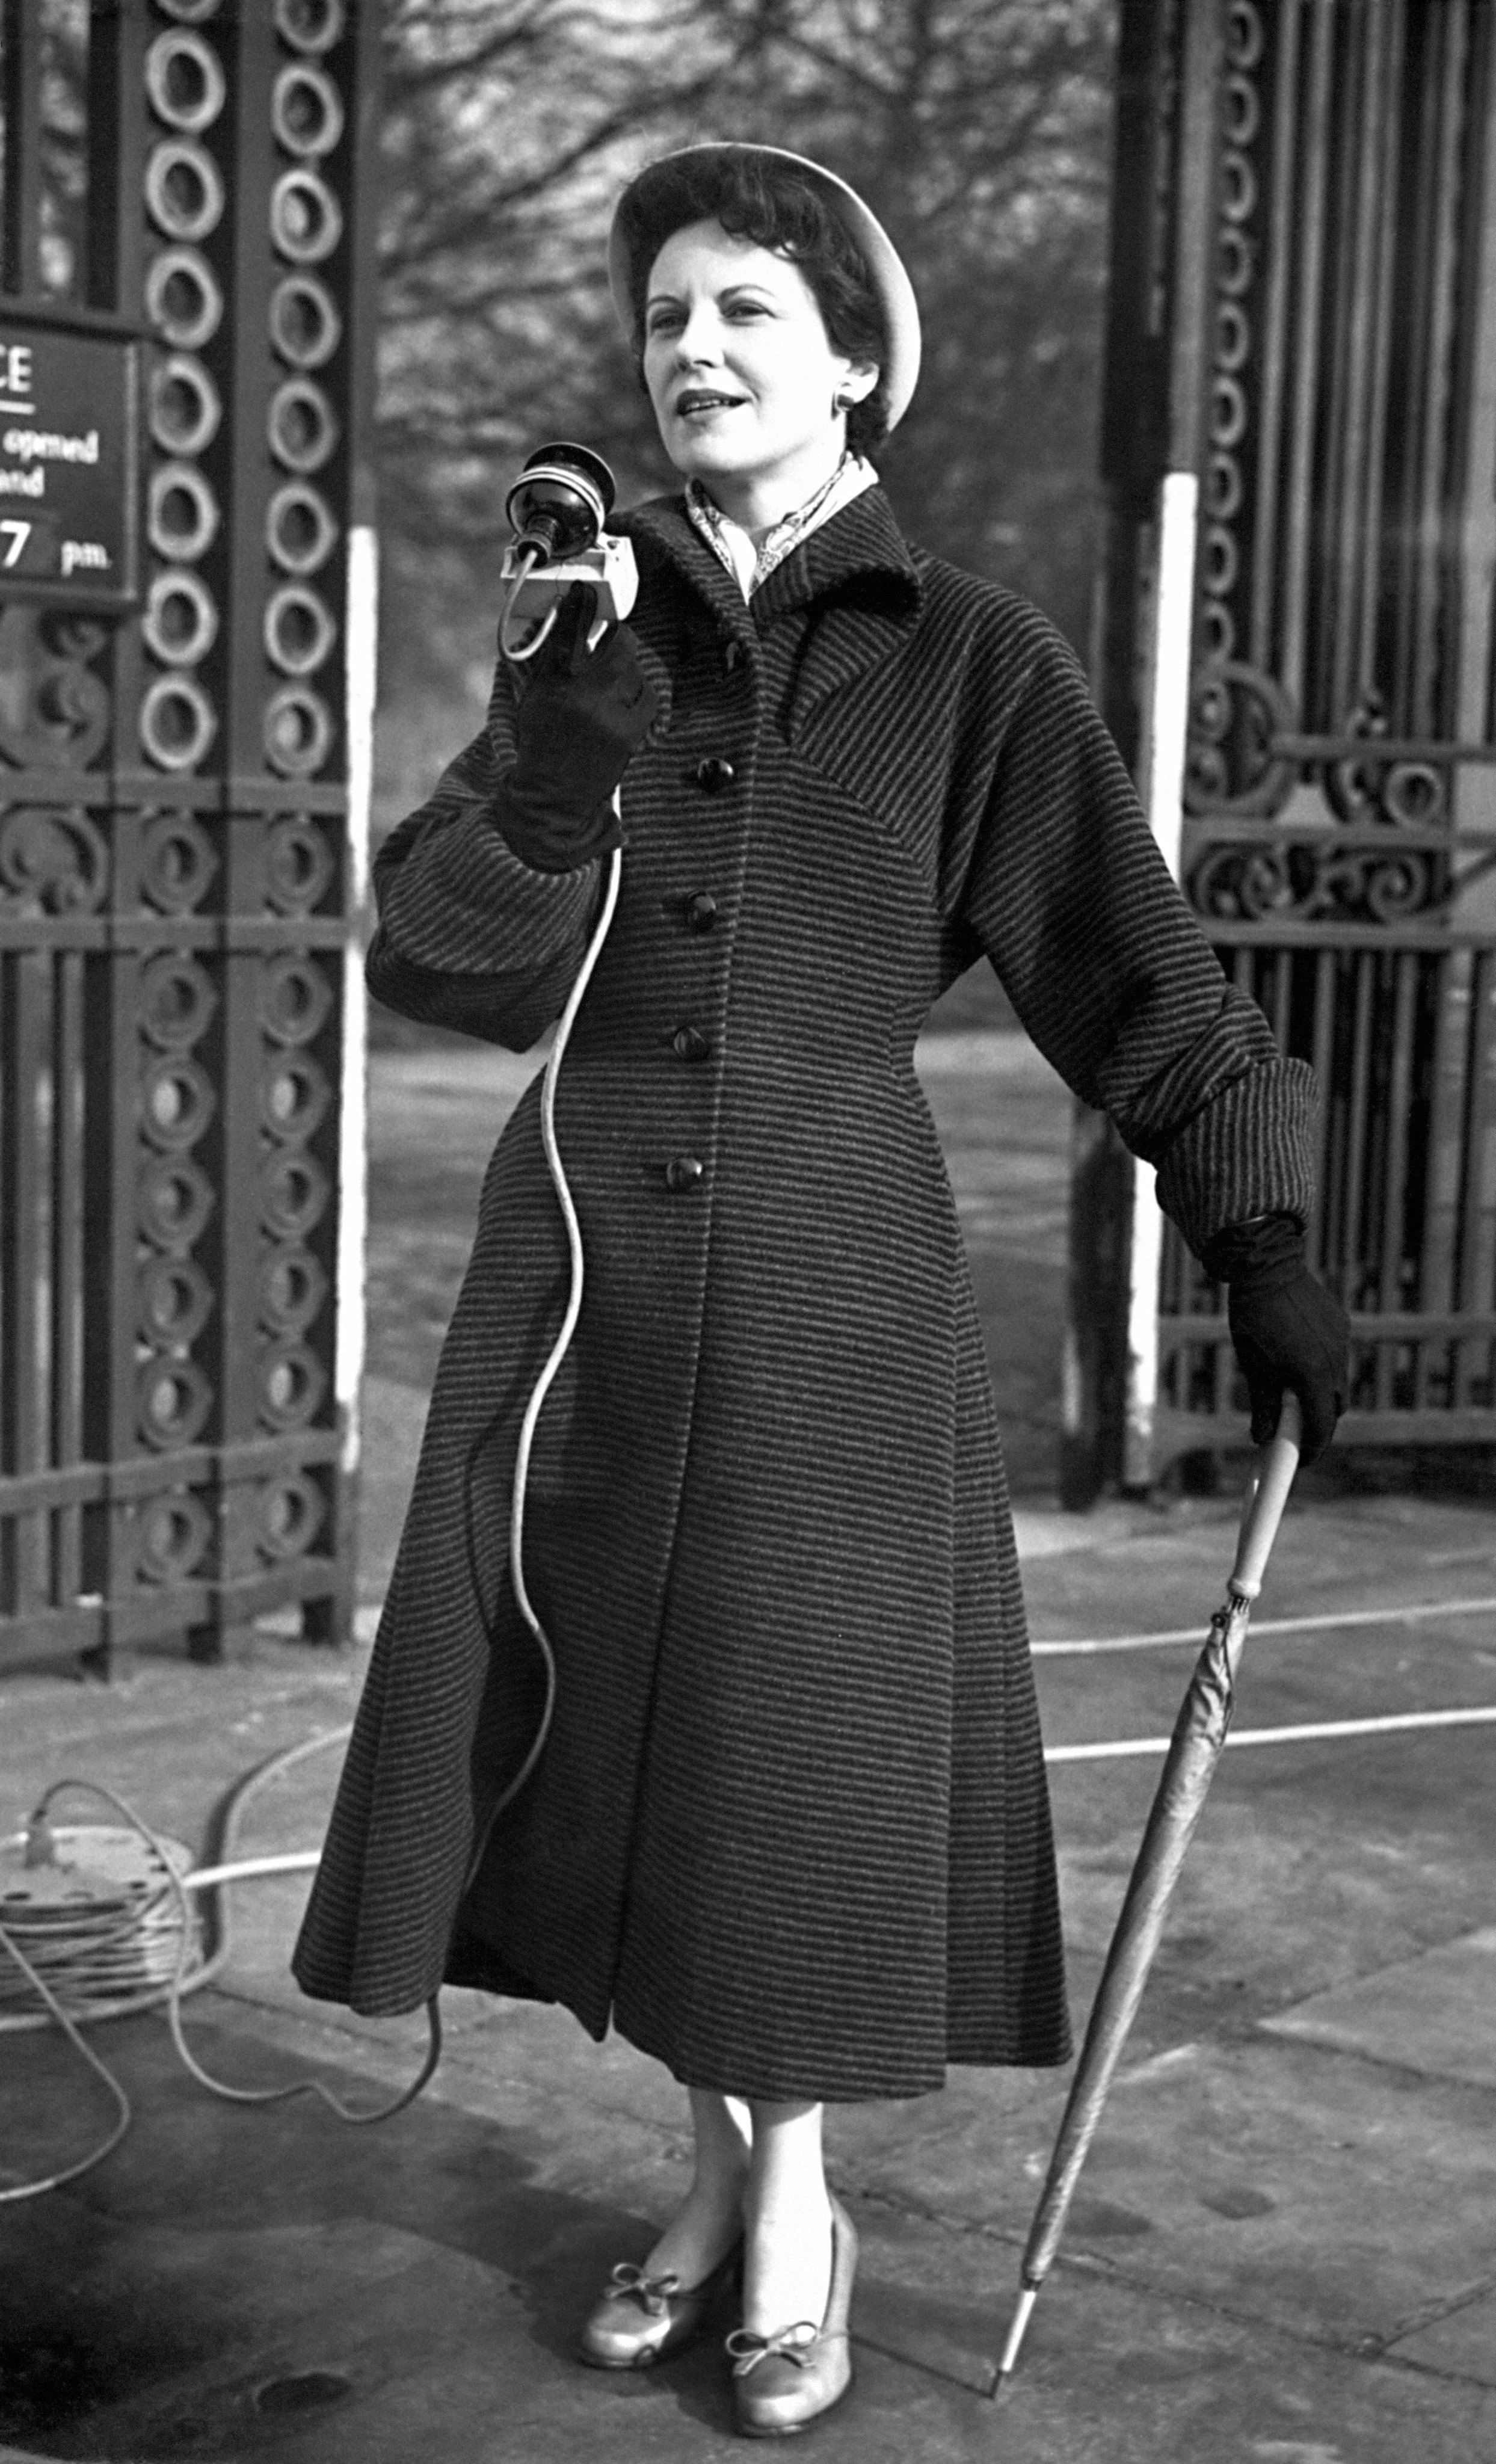 Microphone and umbrella in hand, Manchester born broadcaster Jessica Dunning makes an outside broadcast (from a position near Buckingham Palace) in an audition for commentators for the Coronation. It is thought women may be better able to handle some aspects of the day's ceremonies. 21/02/1953